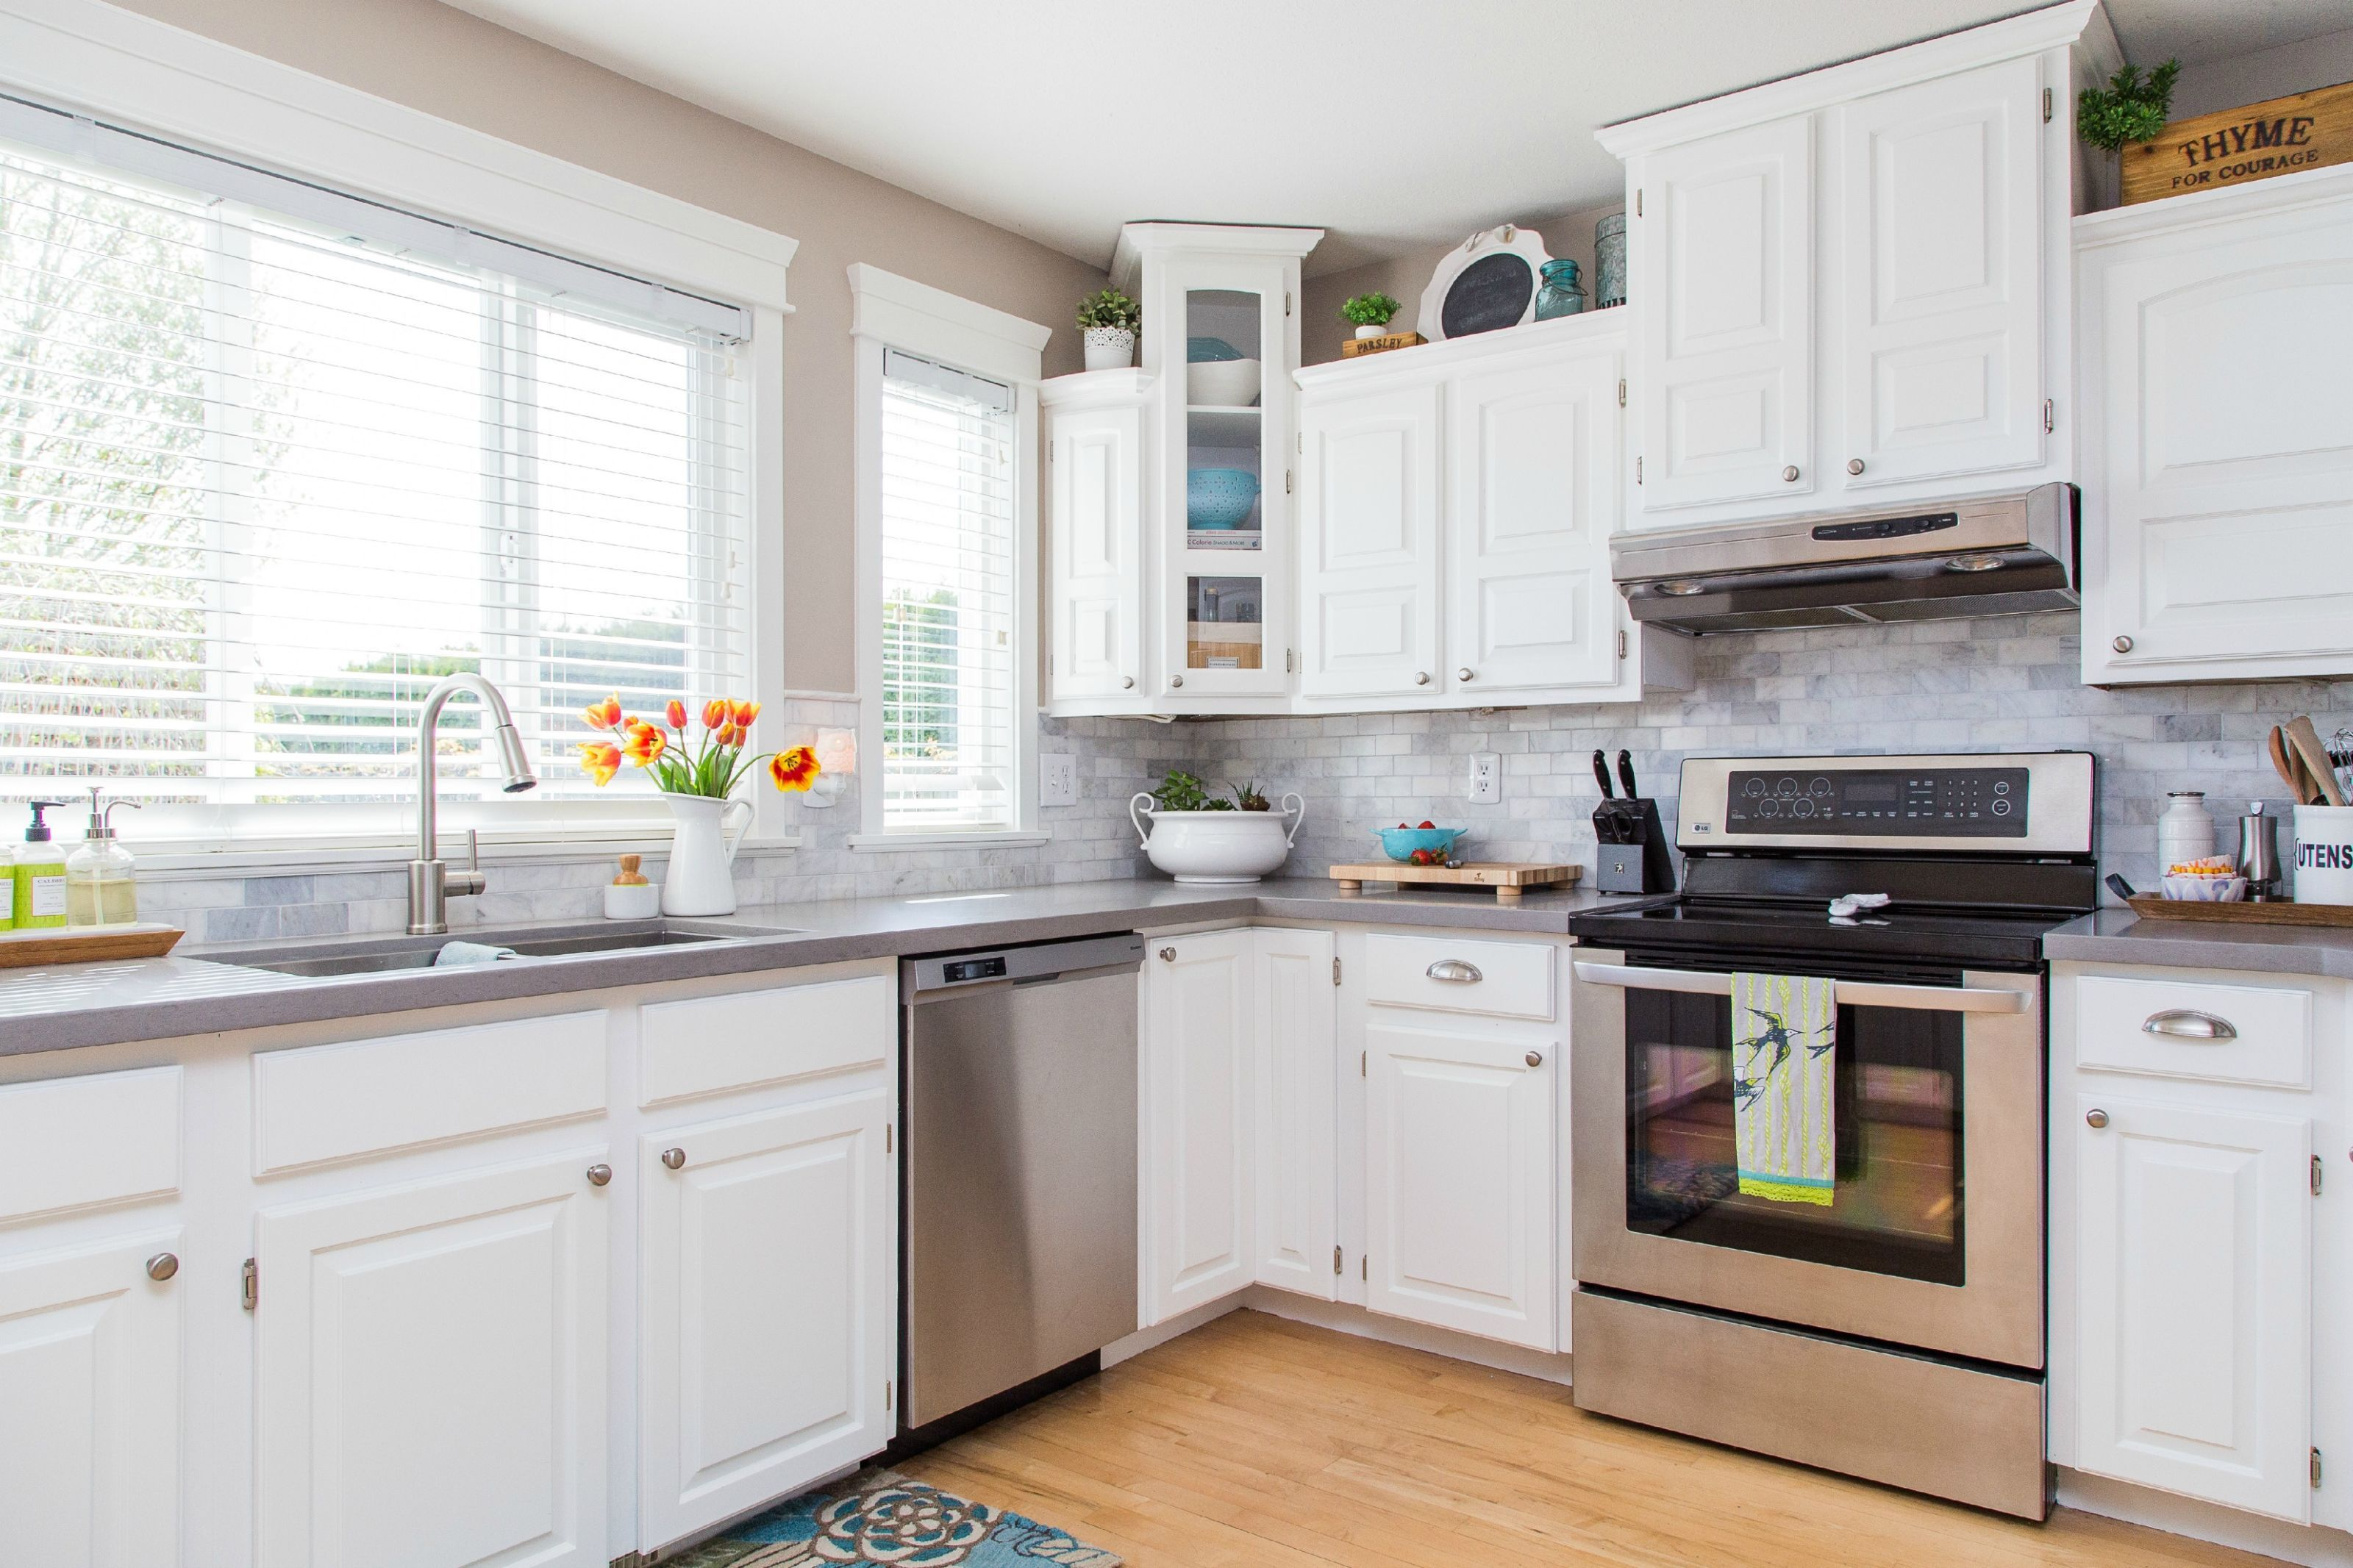 BEFORE & AFTER: How White Paint Saved This Kitchen